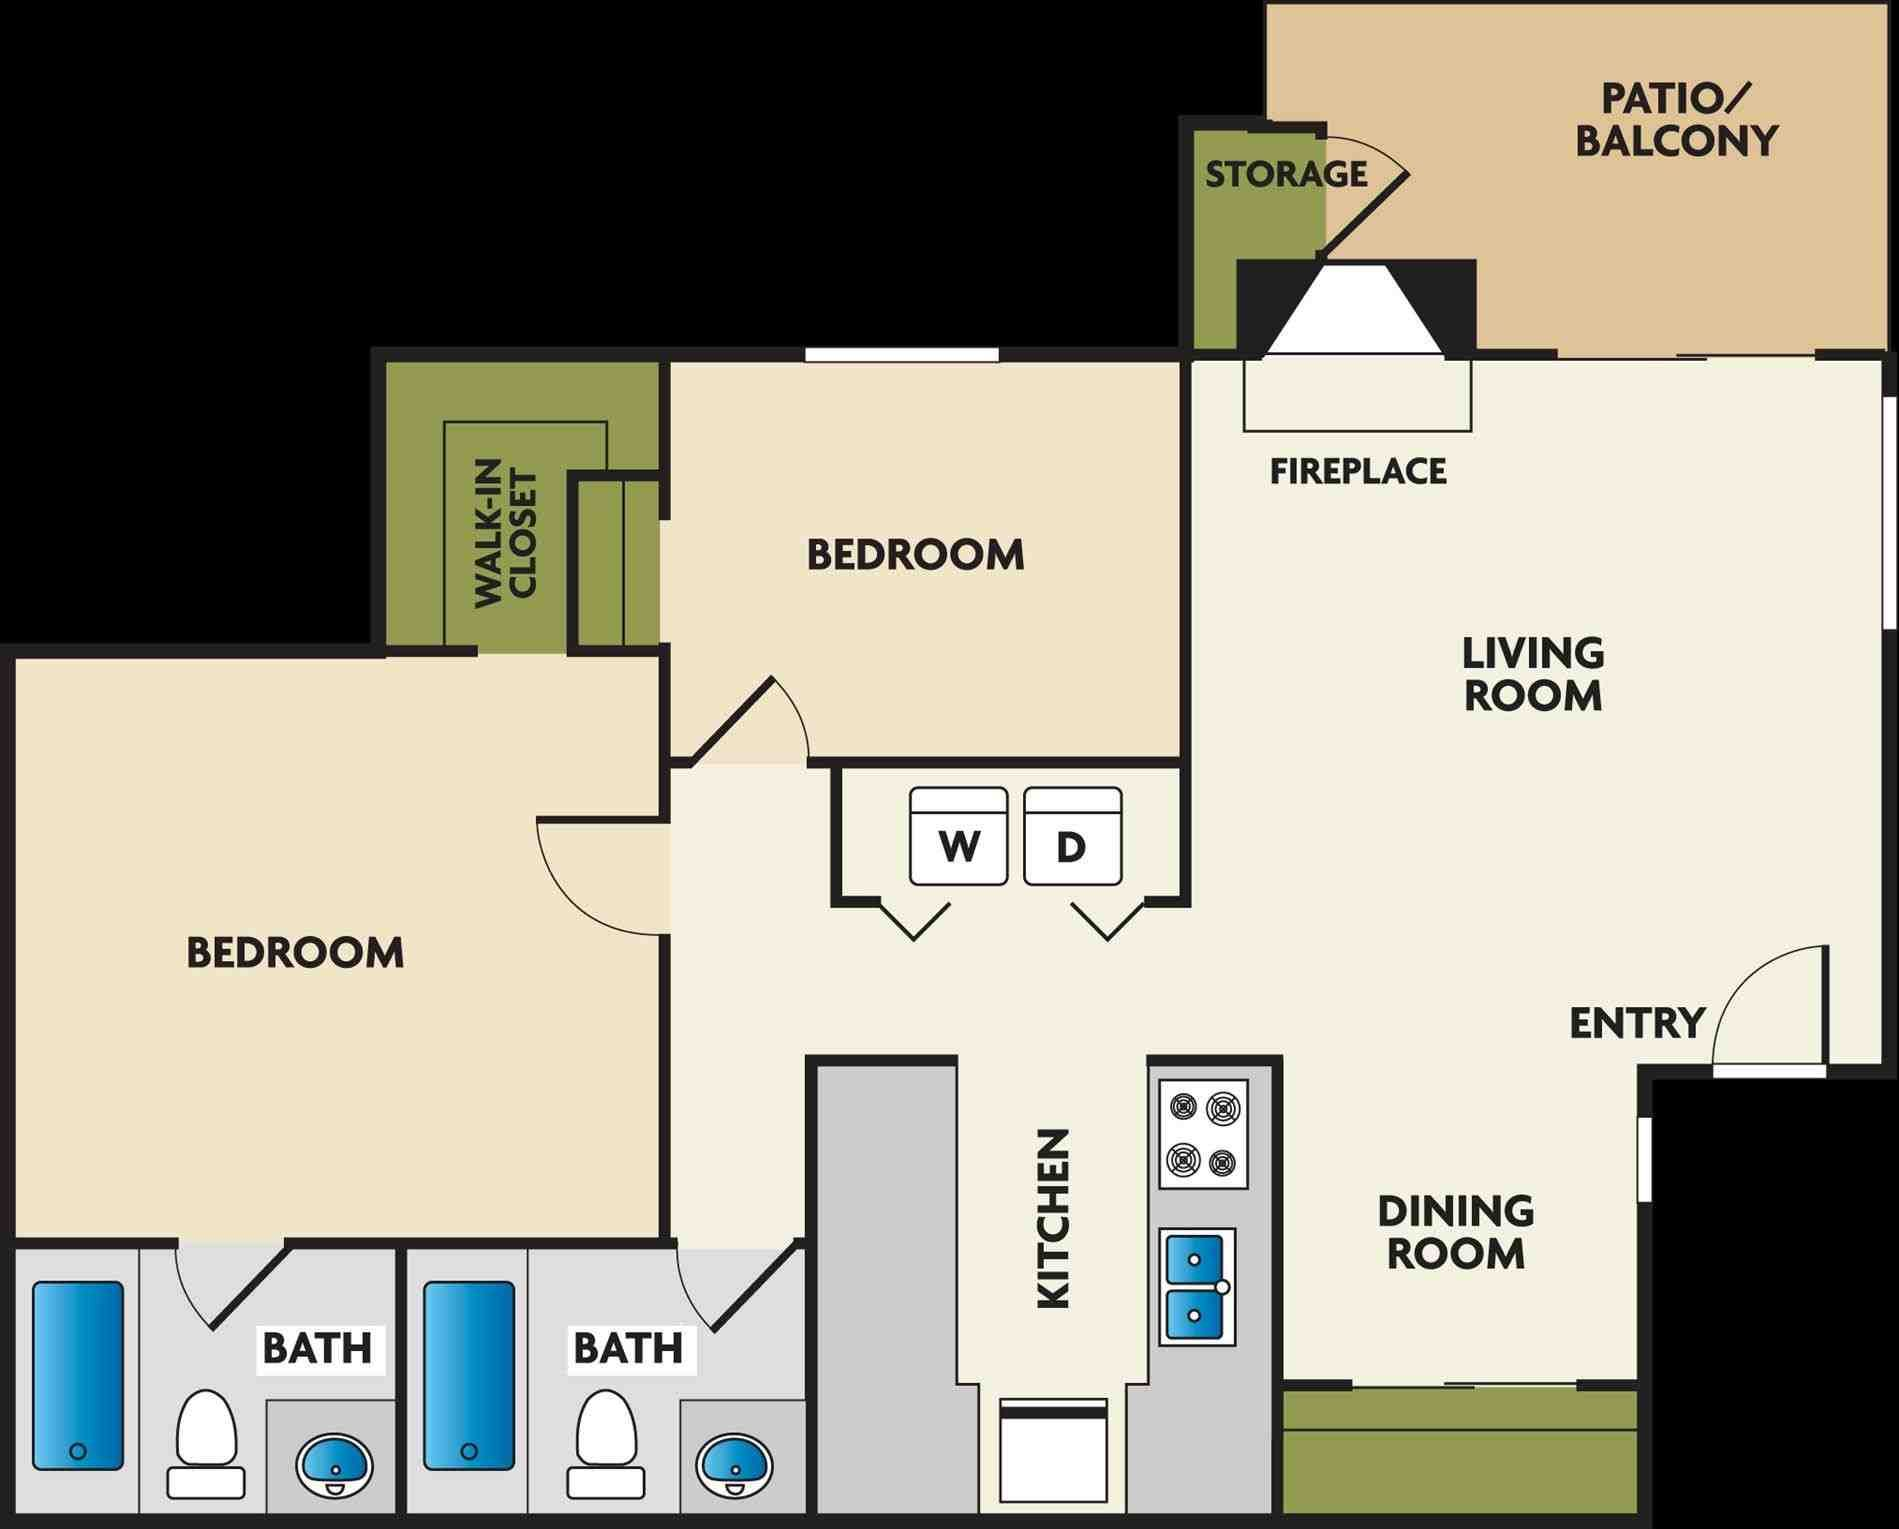 Luxury Apartment Floor Plans 3 Bedroom Bedroom Studio 1 2 Apartments In Atlanta Highland Walk Rooftop Apartment Floor Plans 3 Bedroom Floor Plan Floor Plans